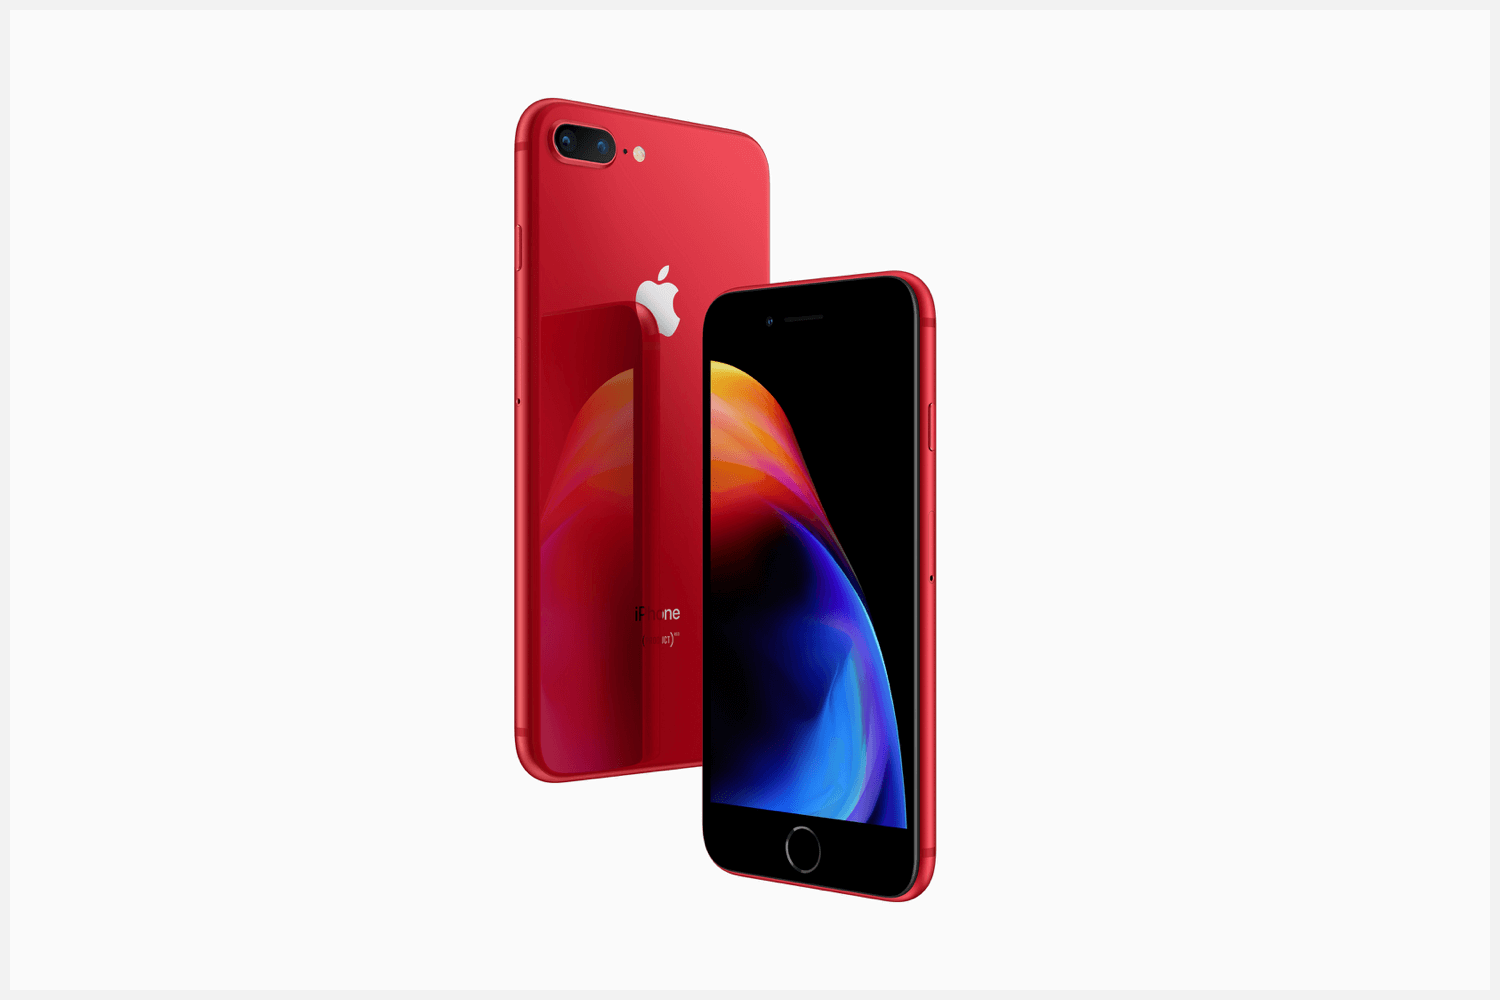 The front and back of Apple's Product Red iPhone